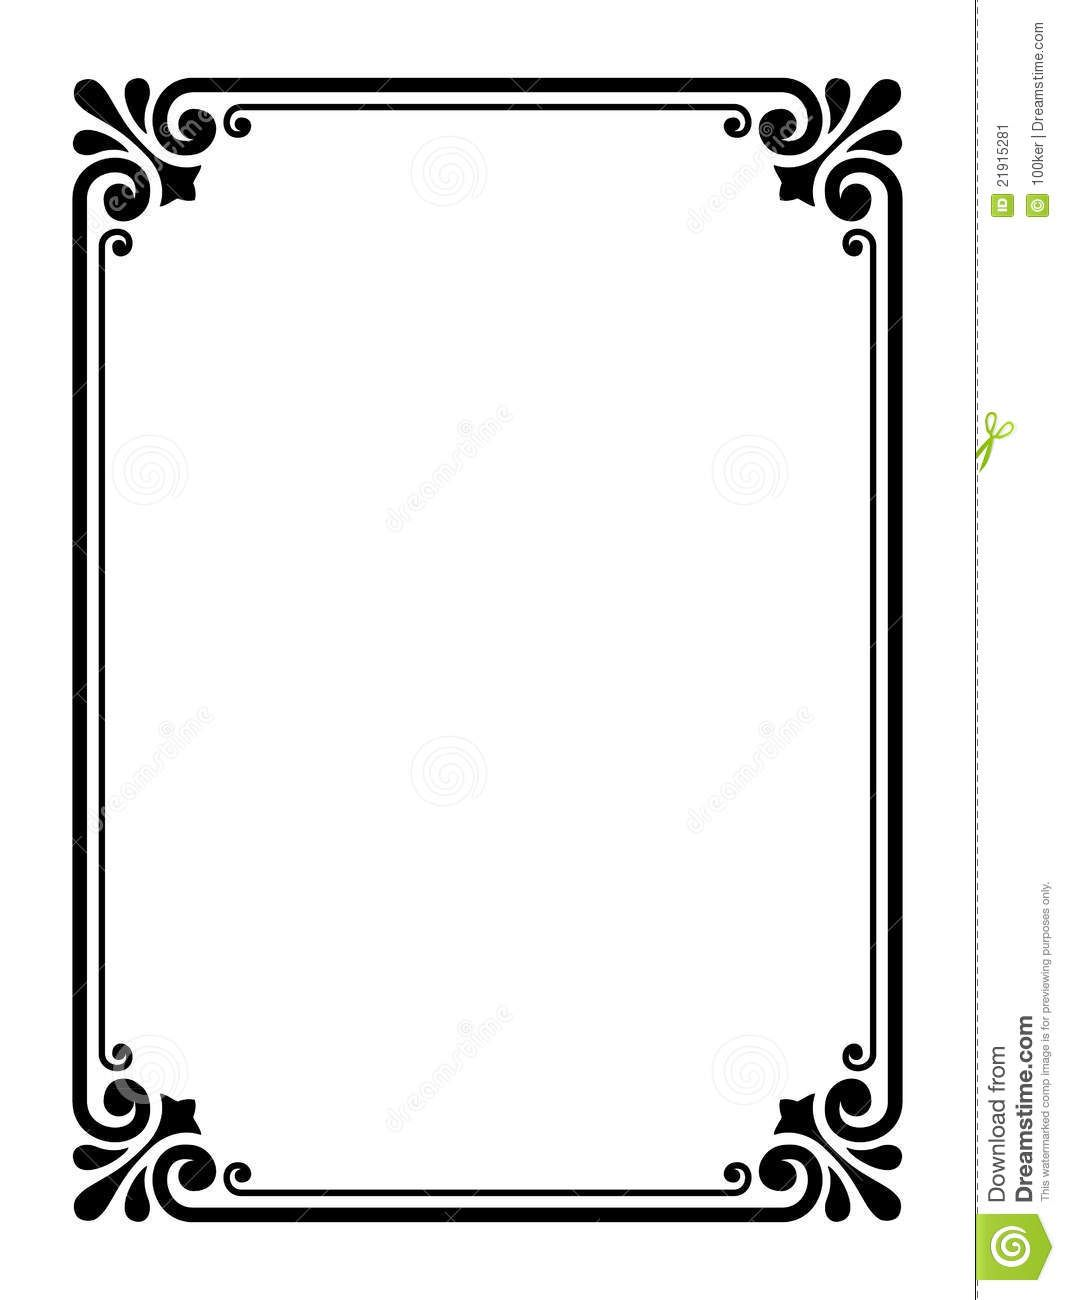 simple frame clipart clipart kid house ideas pinterest rh pinterest com clipart border rose clipart border rose